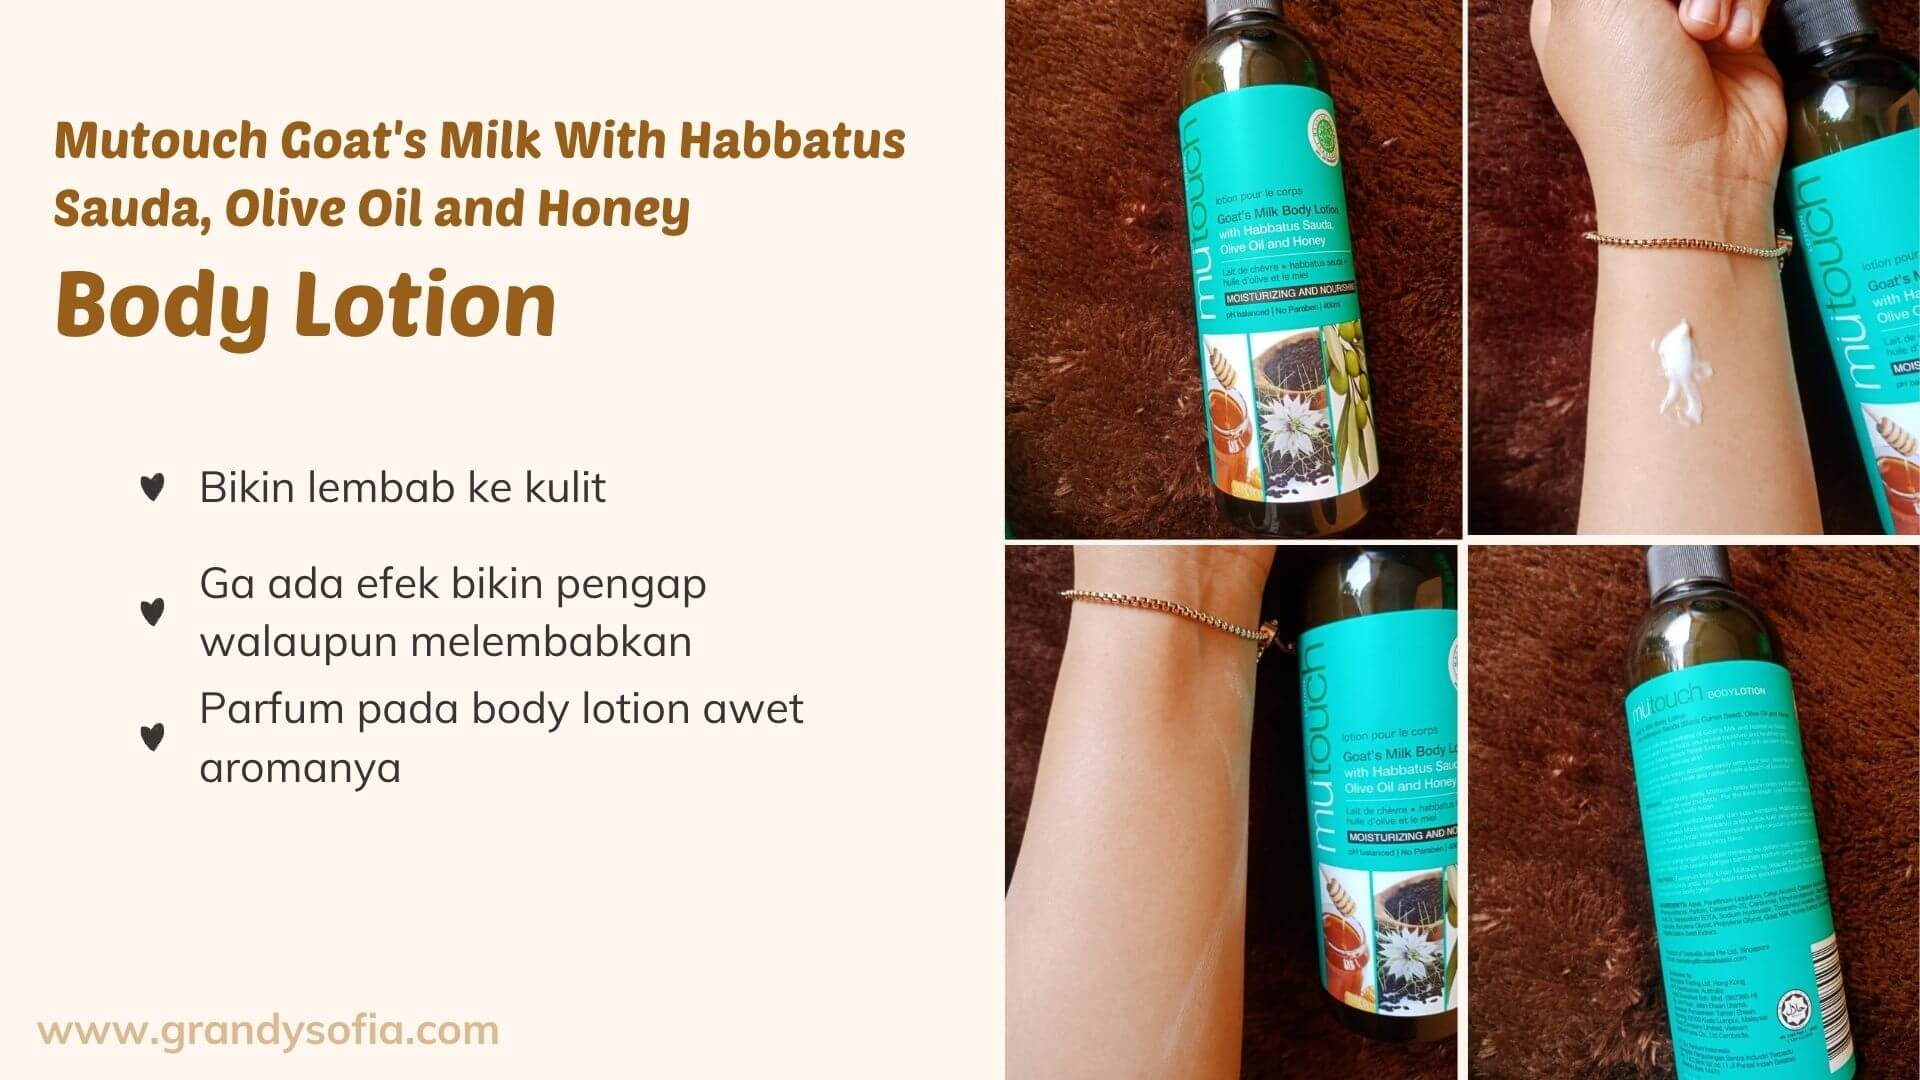 Mutouch Goat's Milk With Habbatus Sauda, Olive Oil and Honey halal produk, bodycare halal